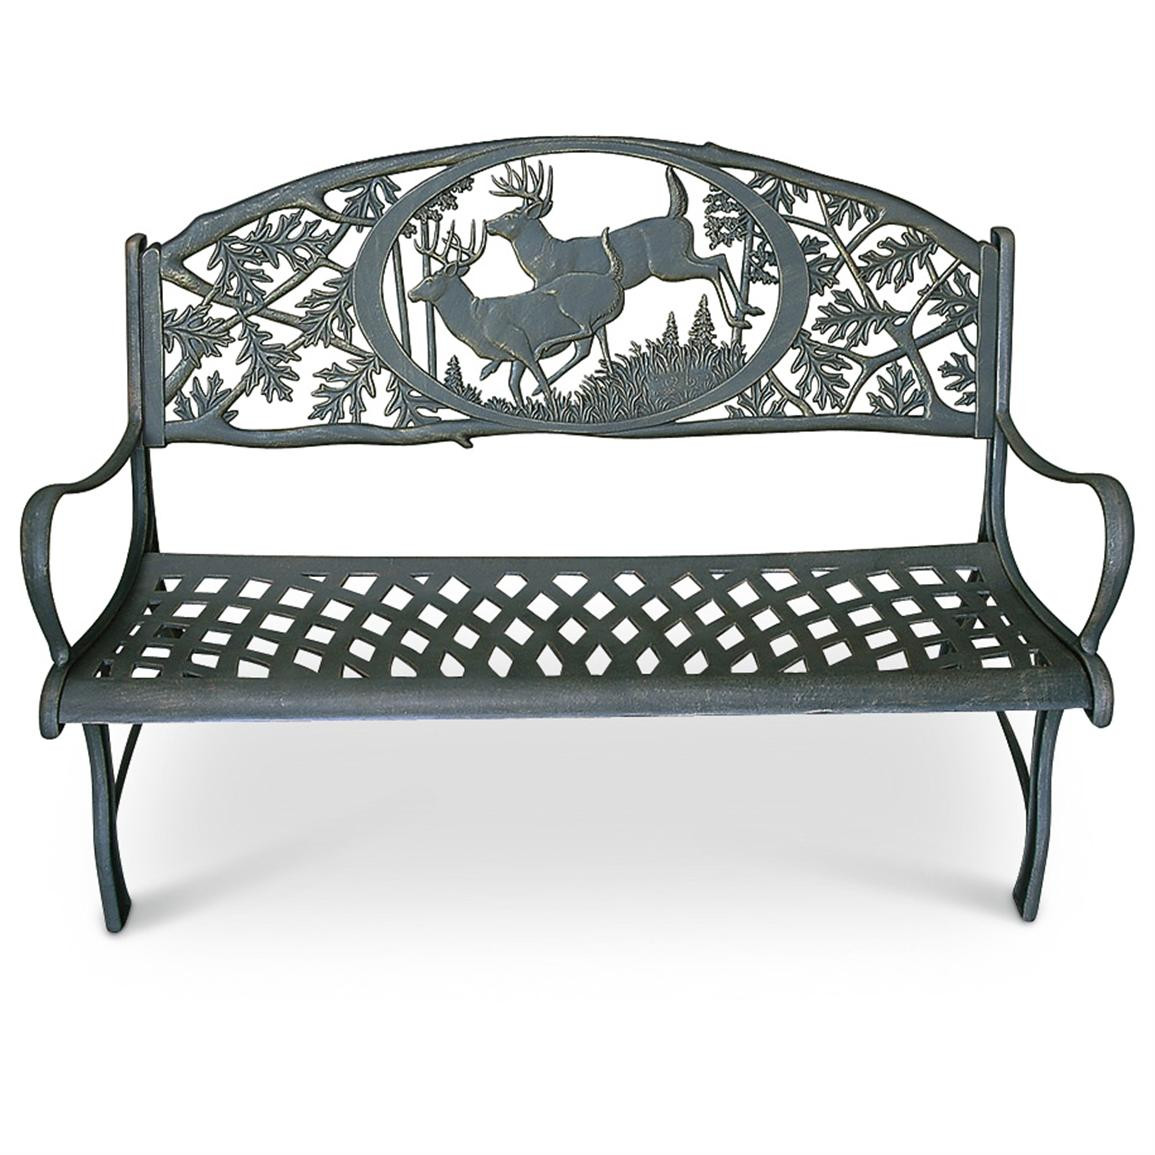 Best ideas about Cast Iron Patio Furniture . Save or Pin Cast Iron Outdoor Bench Patio Furniture at Now.